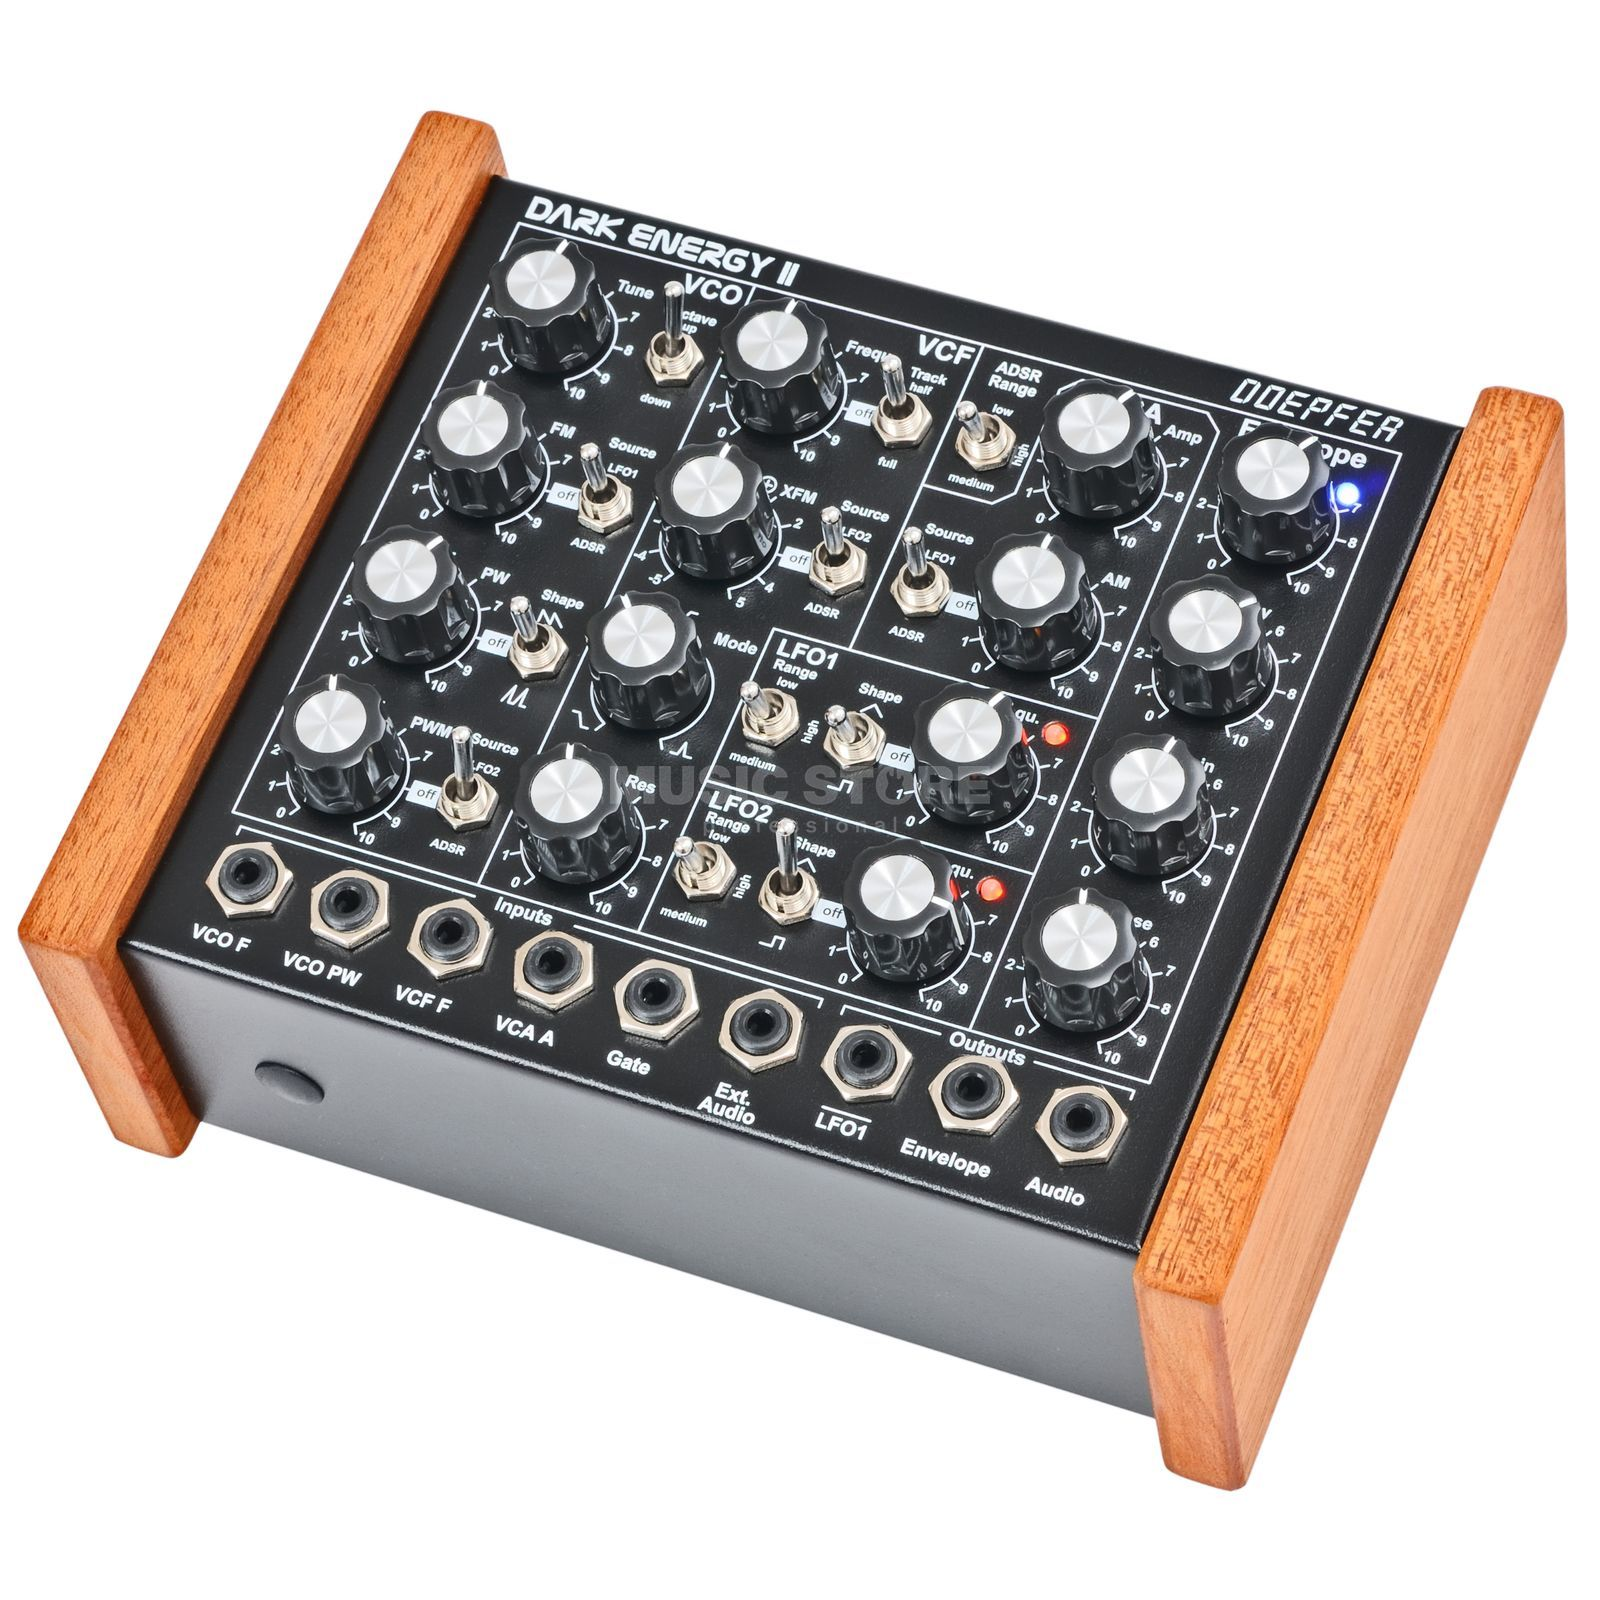 Doepfer Dark Energy II Analog Synthesizer Produktbild